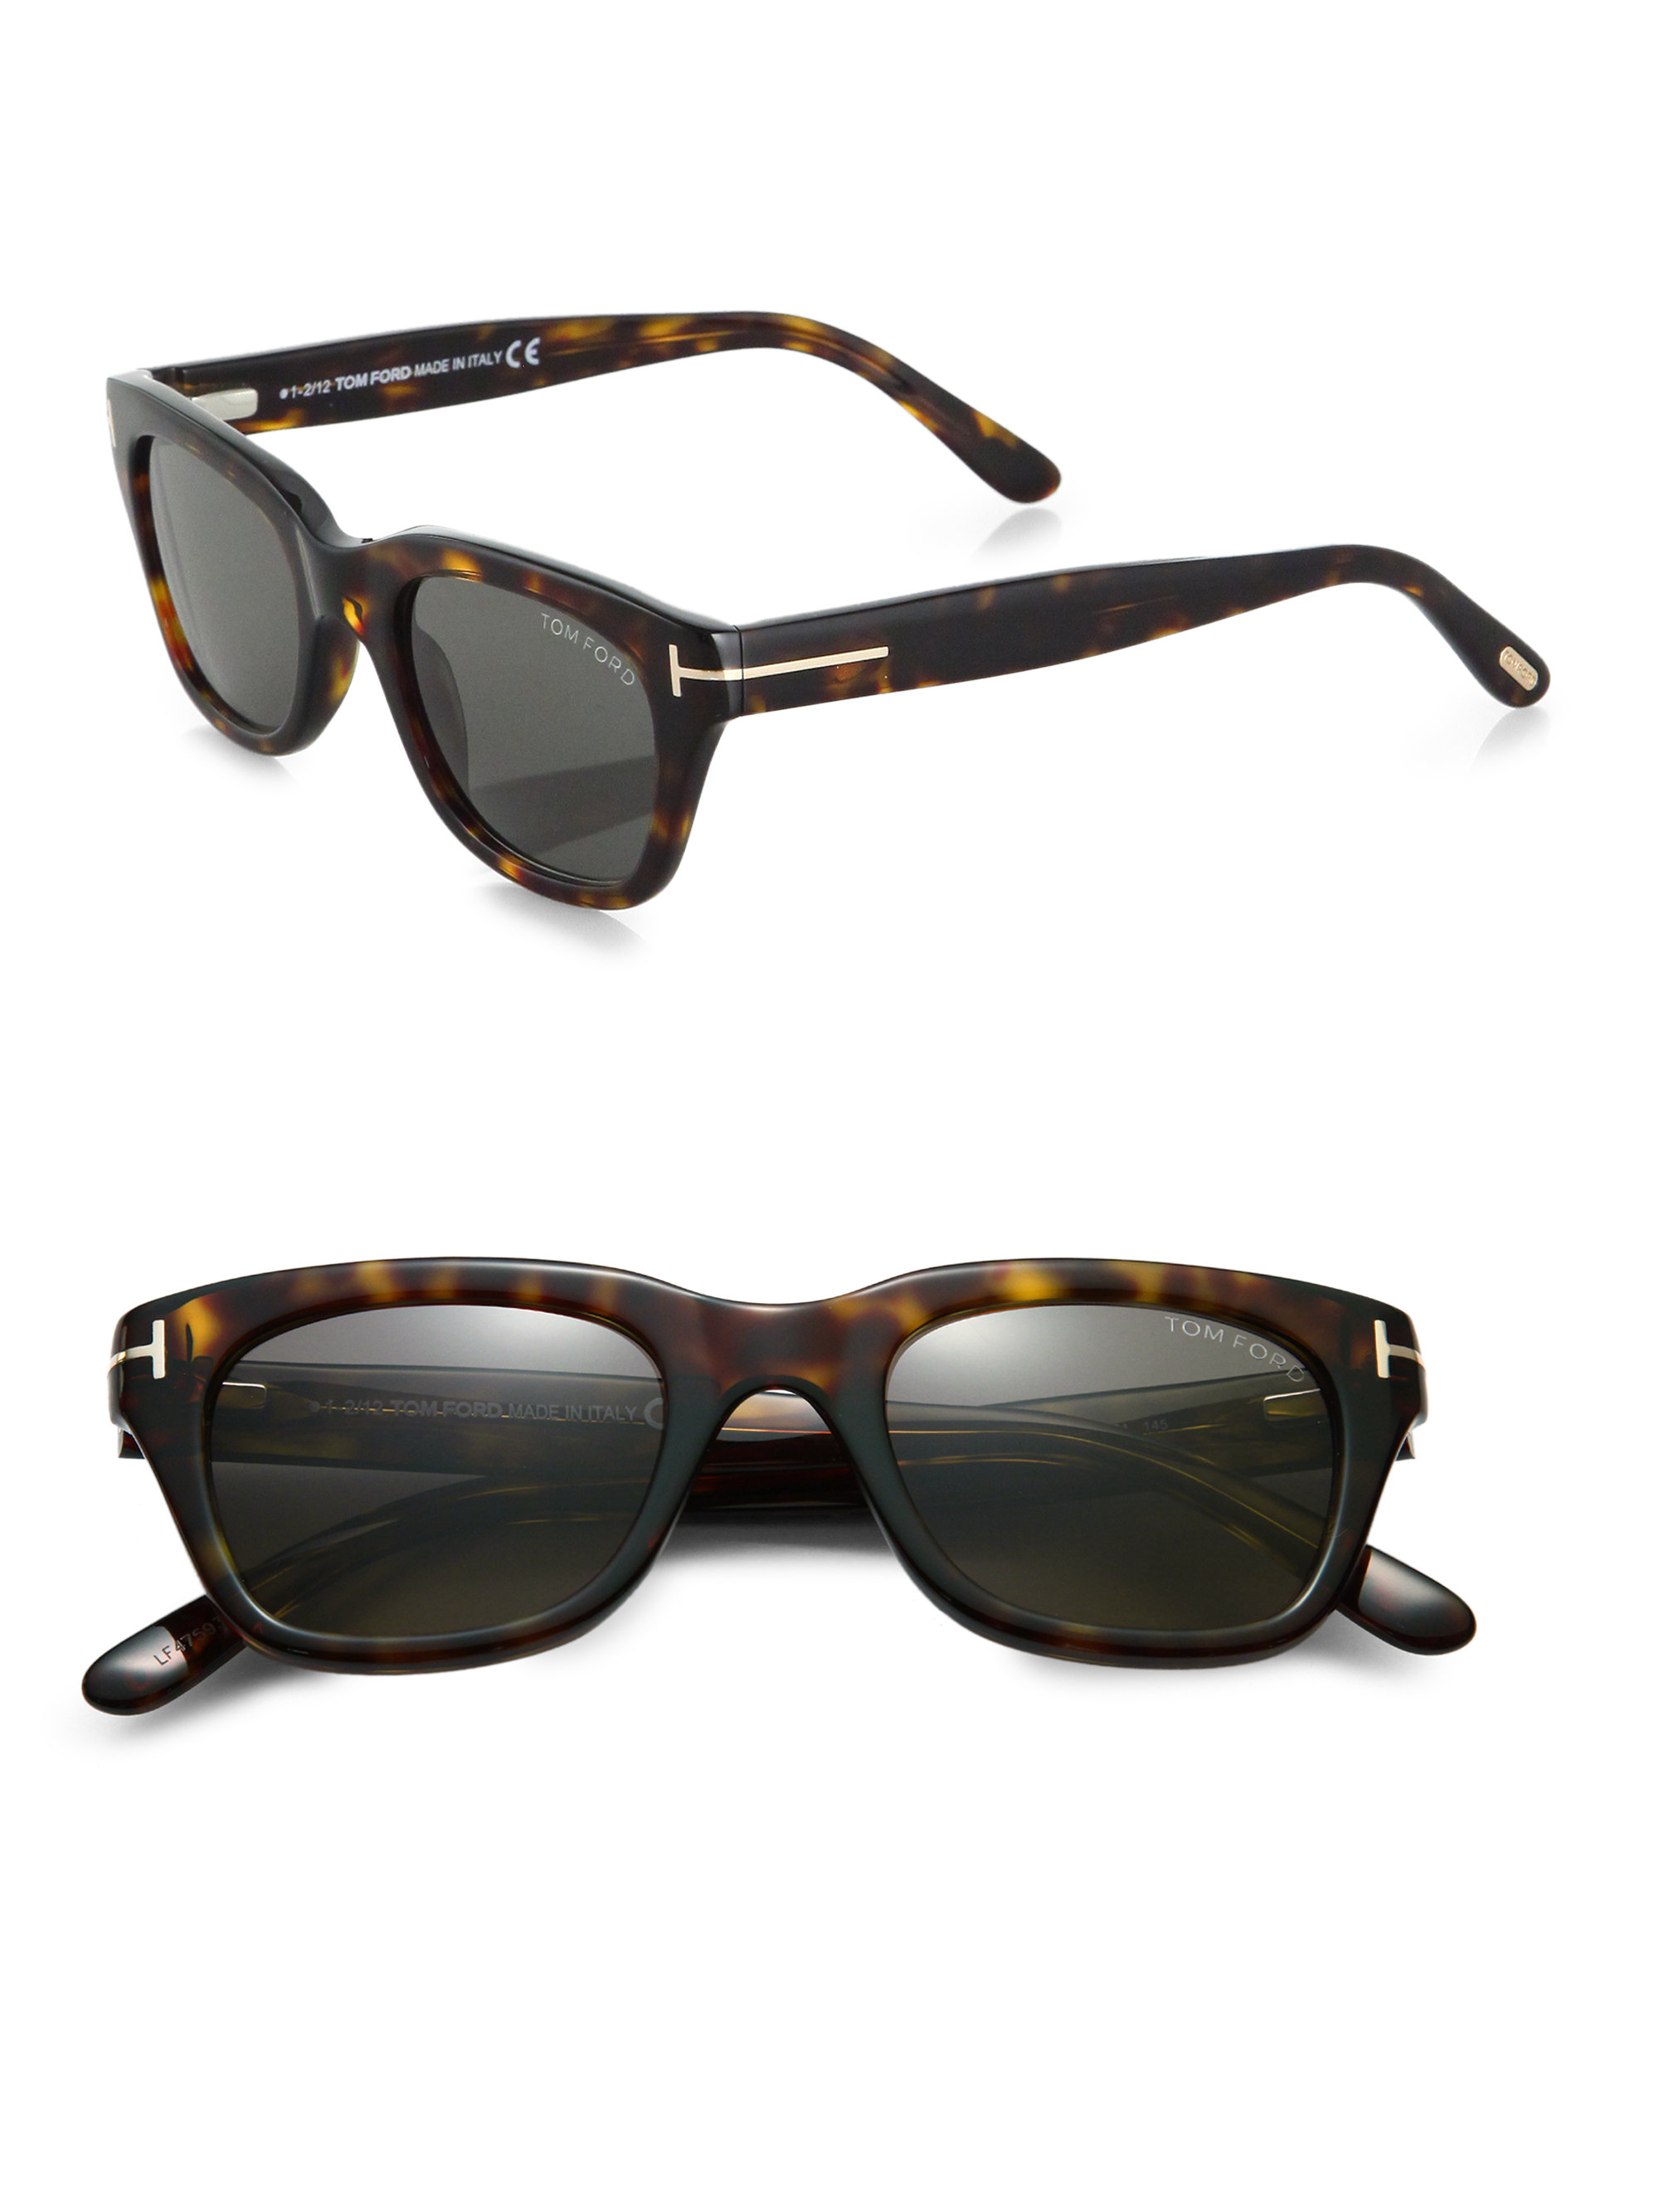 6f2ecb30d35 Lyst - Tom Ford Snowdon Acetate Sunglasses in Brown for Men